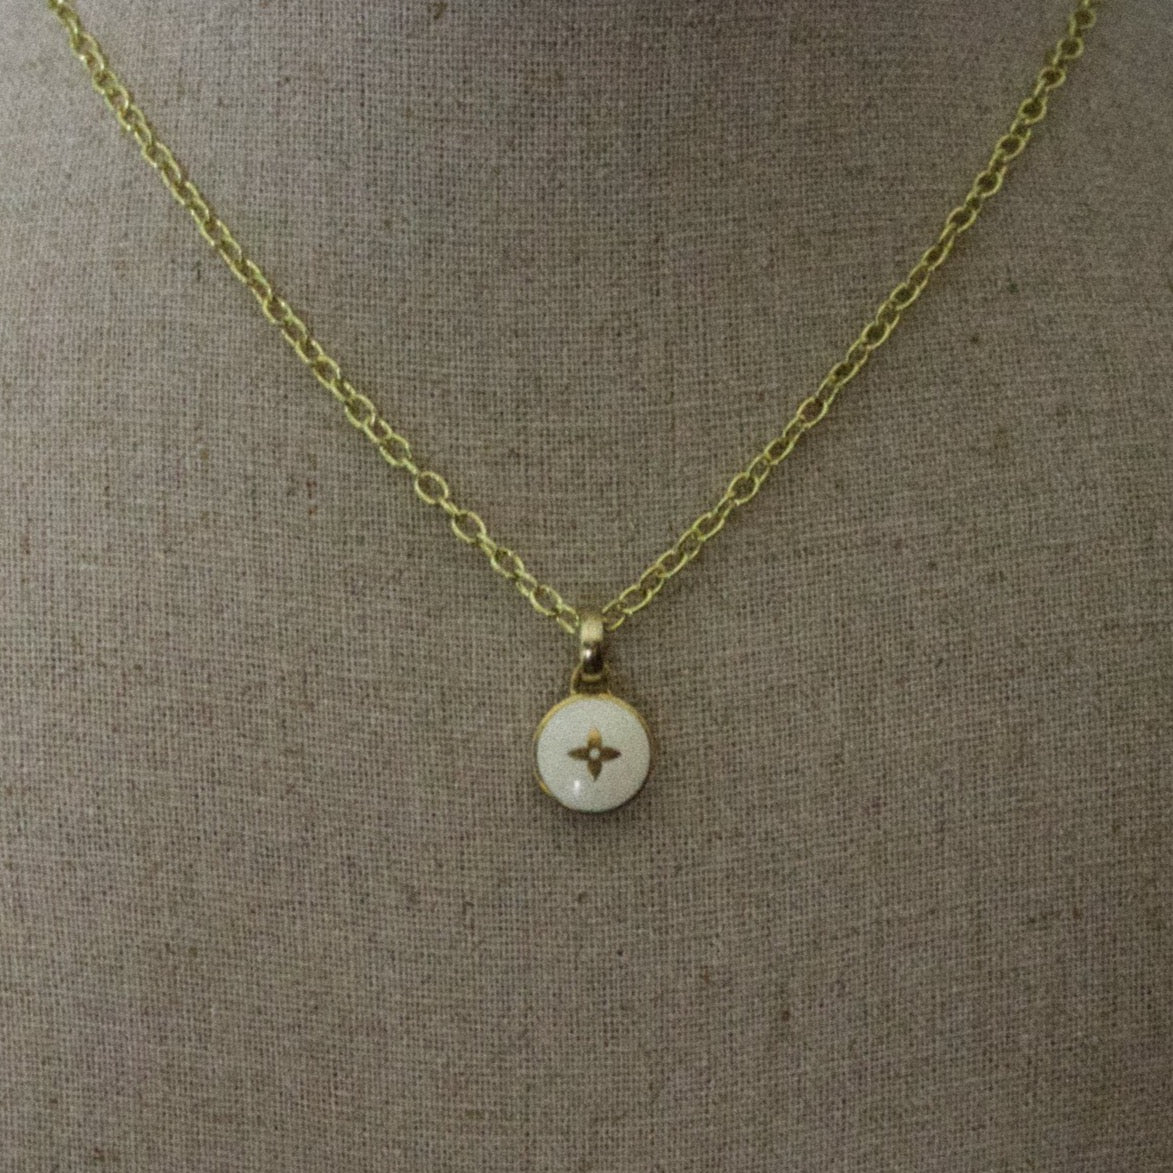 Repurposed White Louis Vuitton Star Charm Necklace